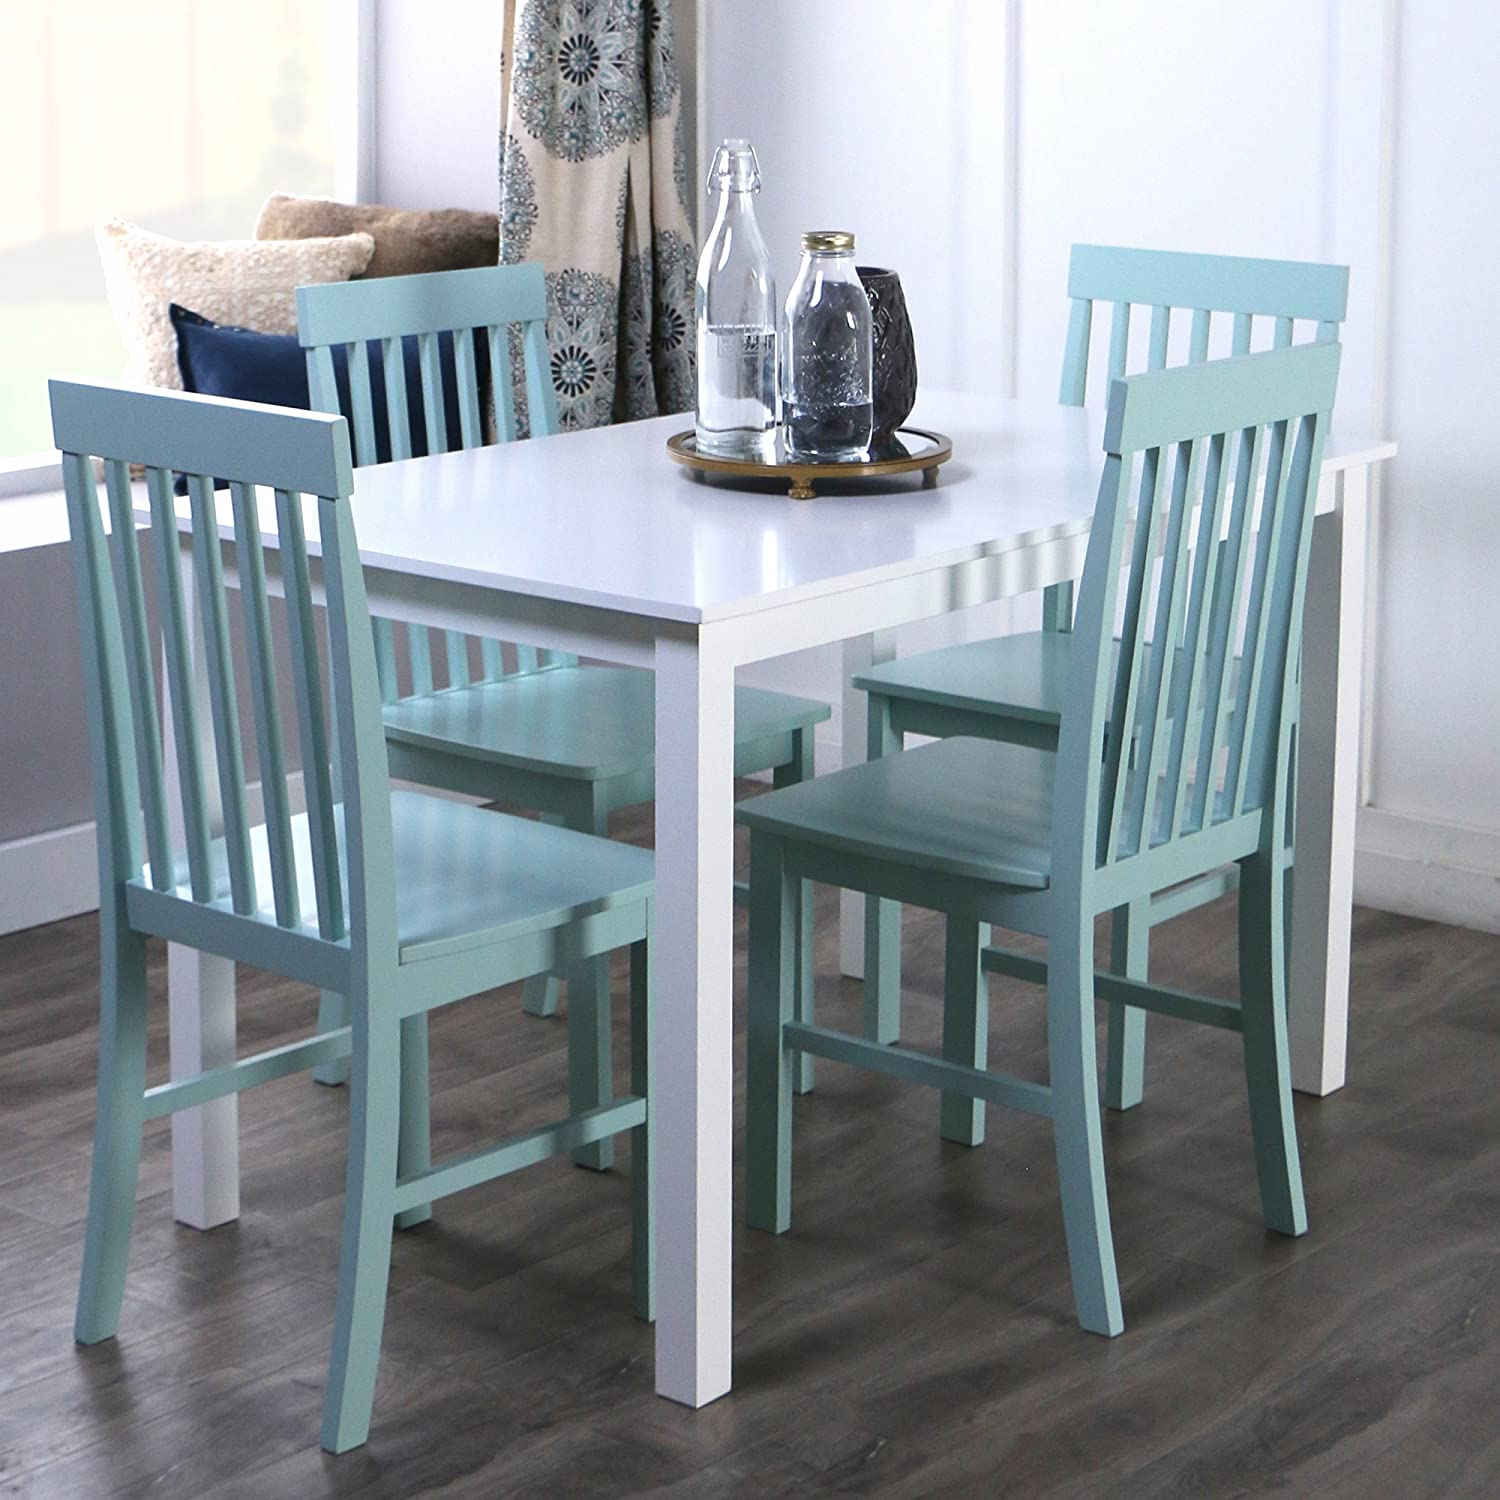 Merveilleux Amazon.com   WE Furniture 5 Piece Chic Wood Dining Set, Green   Table U0026  Chair Sets